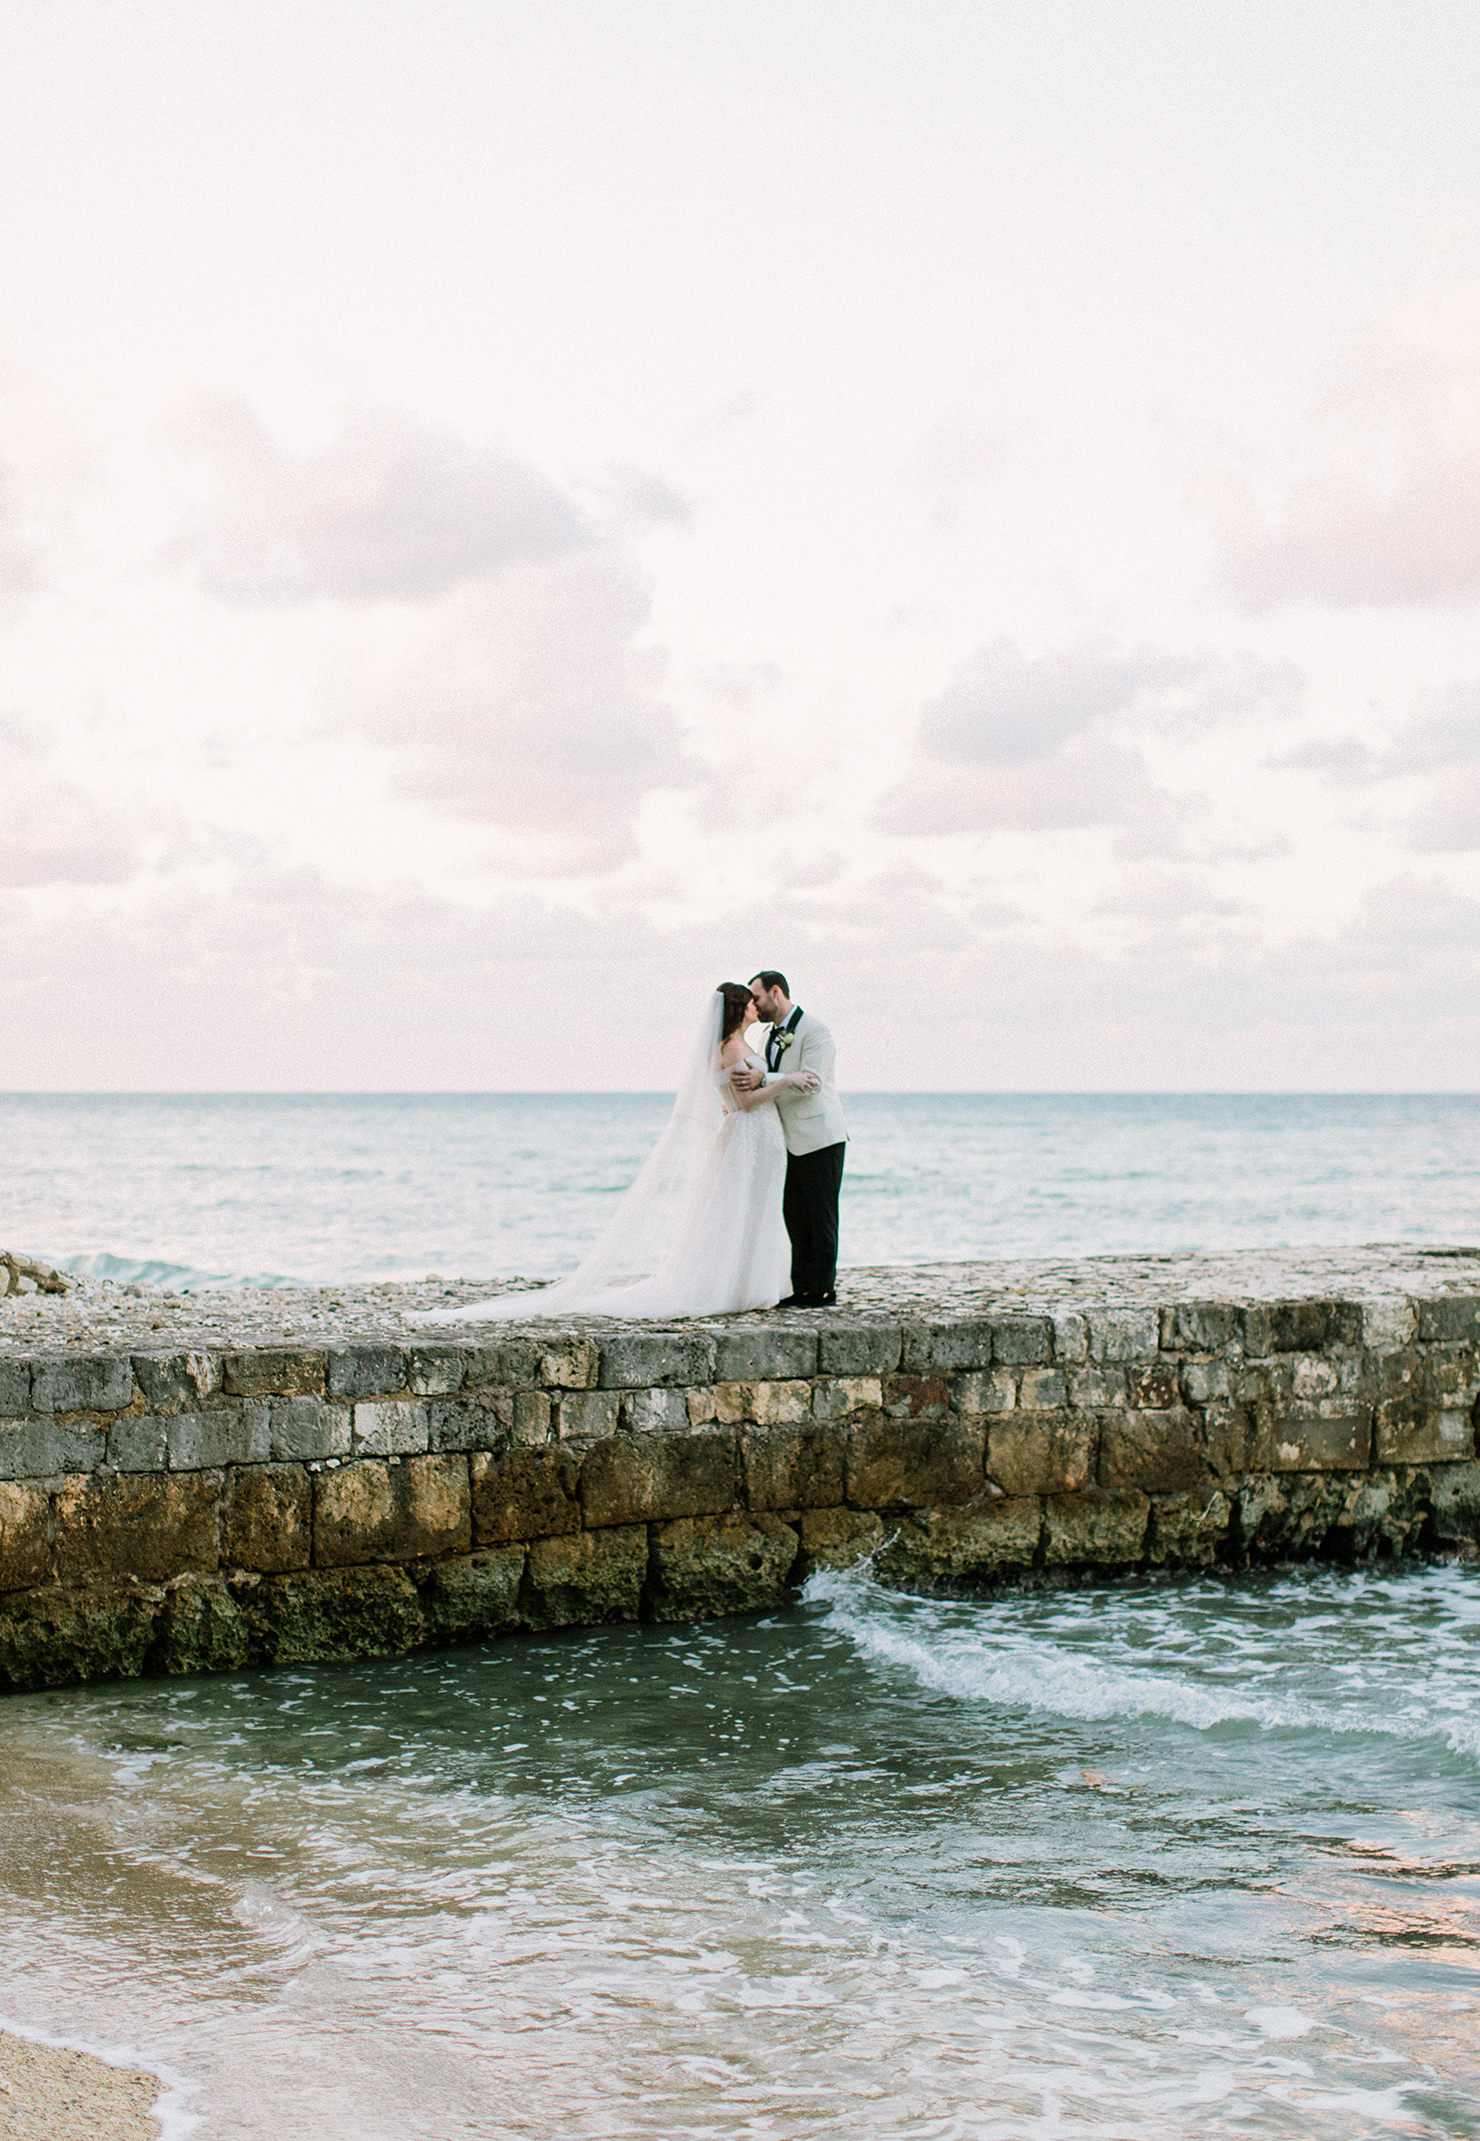 abbey jeffrey wedding couple kiss on stone pier